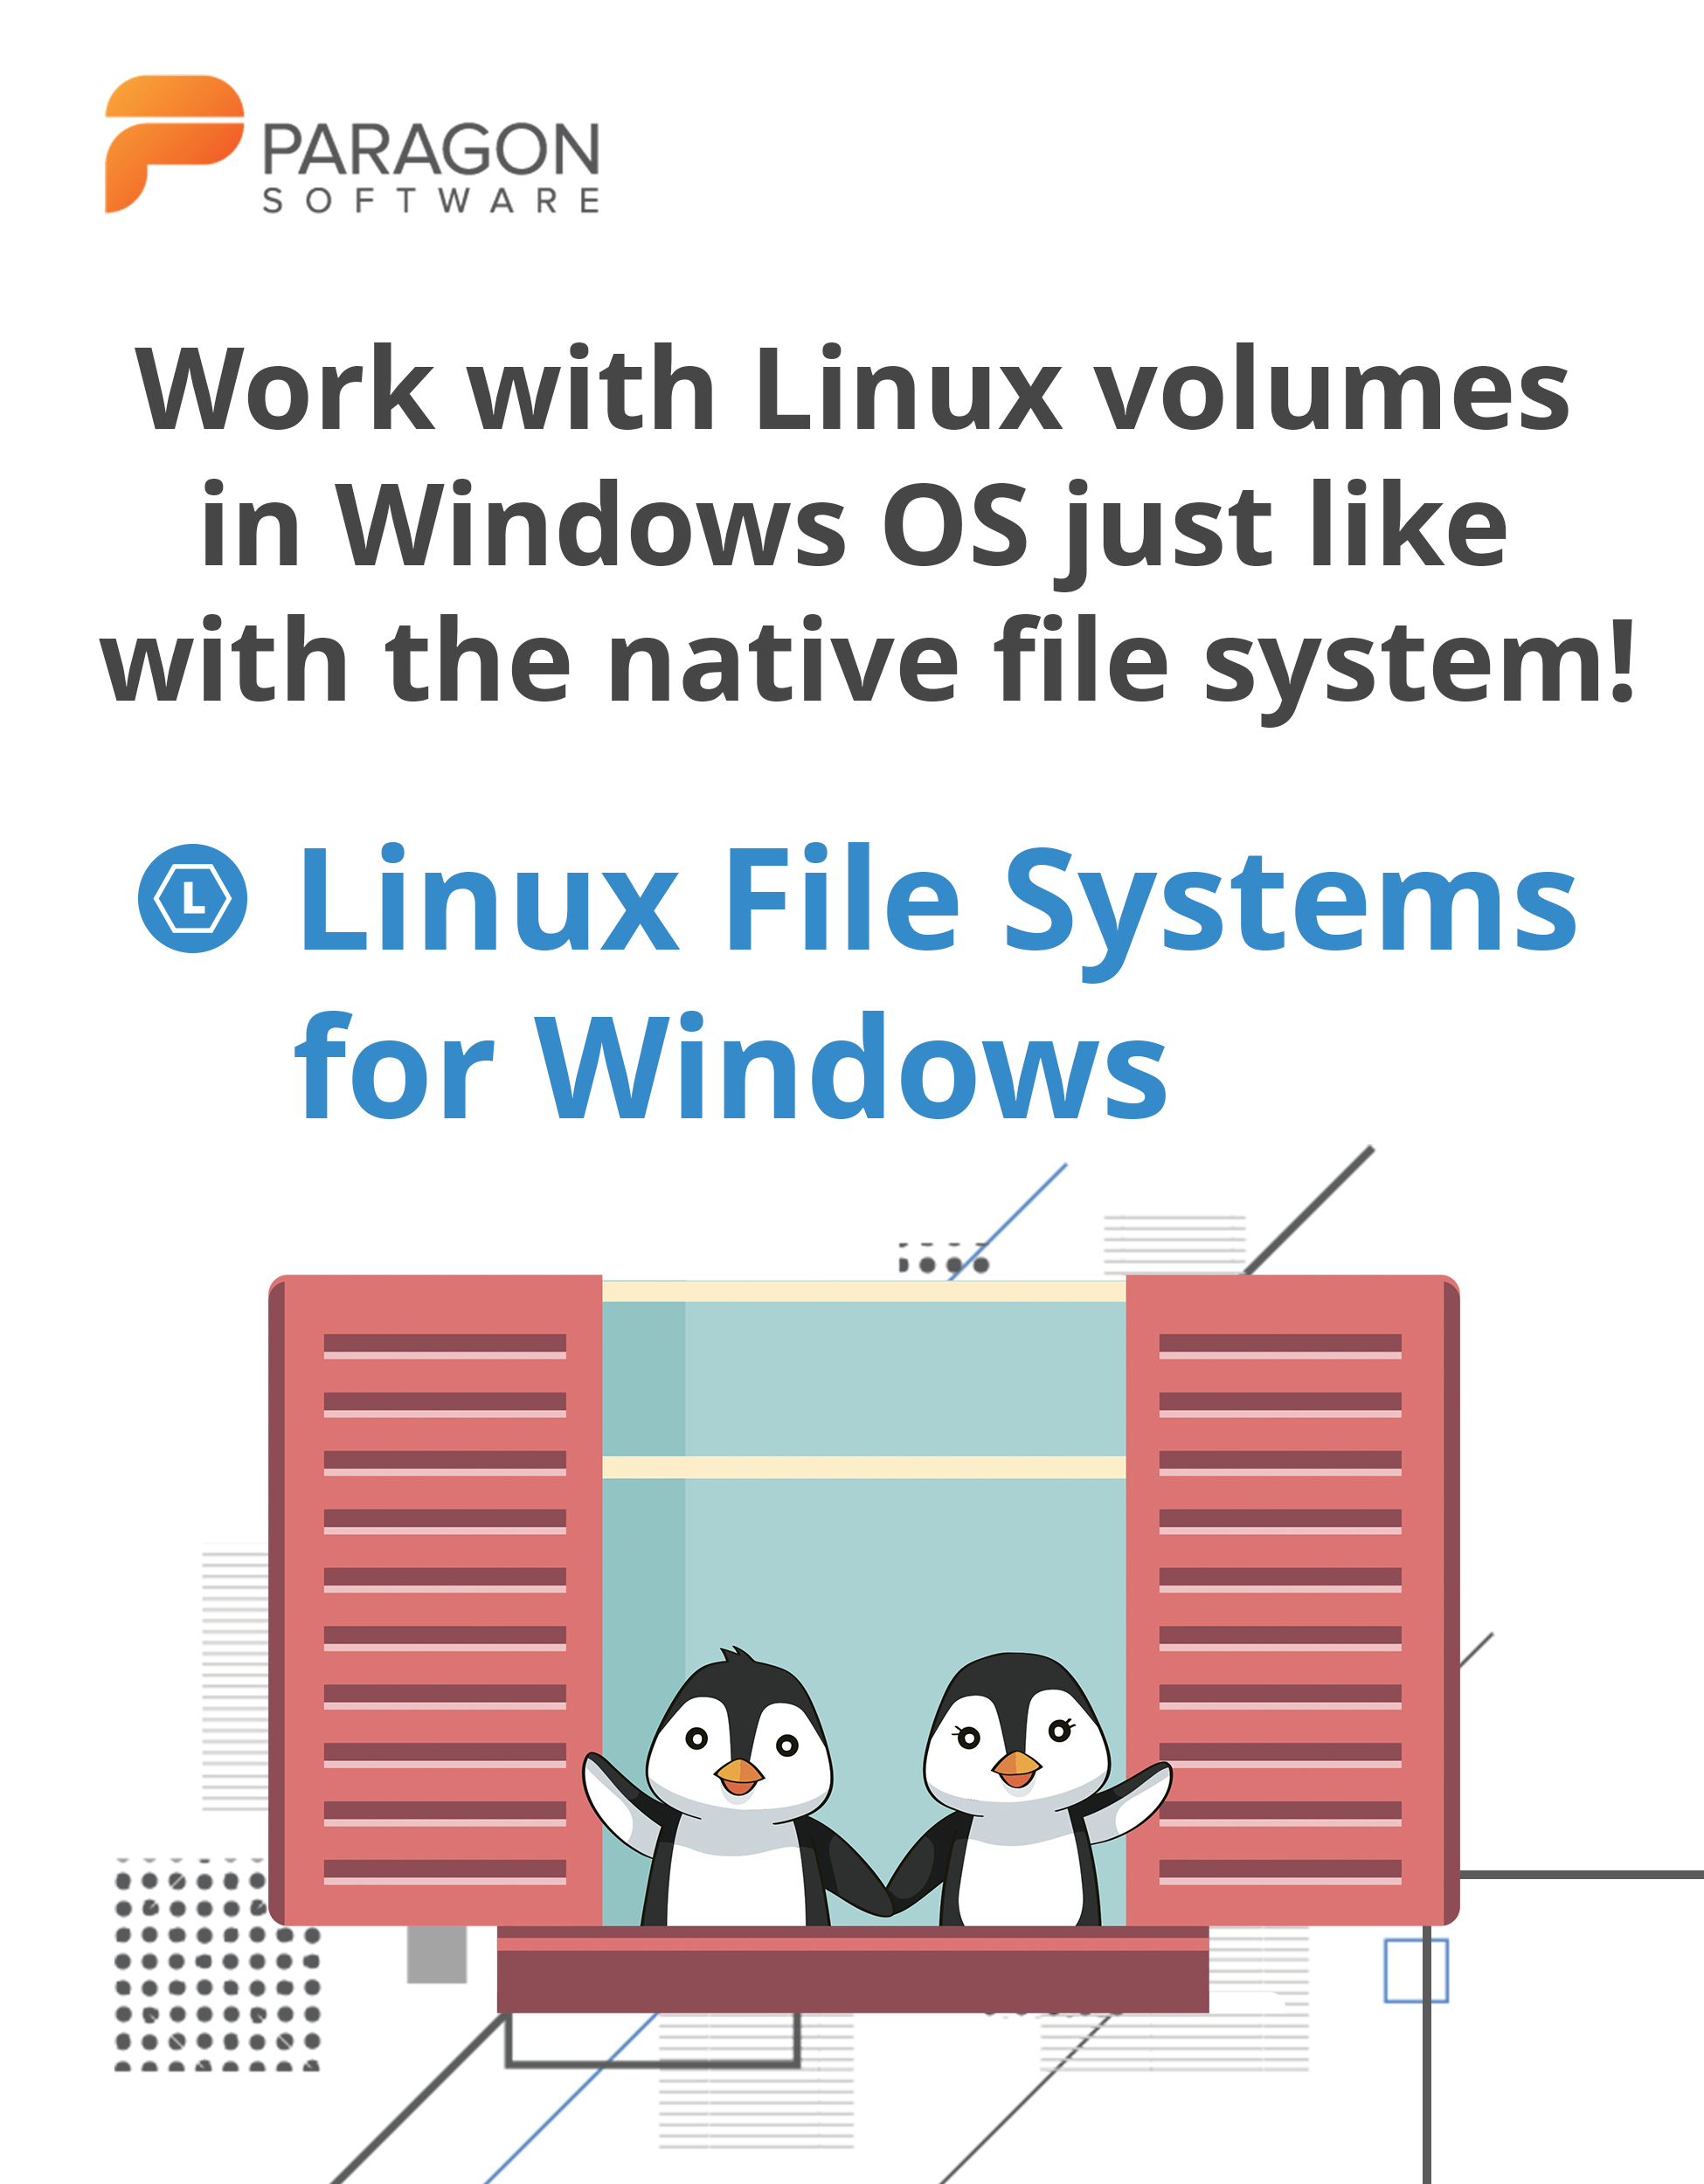 Linux_File_Systems_for_Windows_by_Paragon_Software